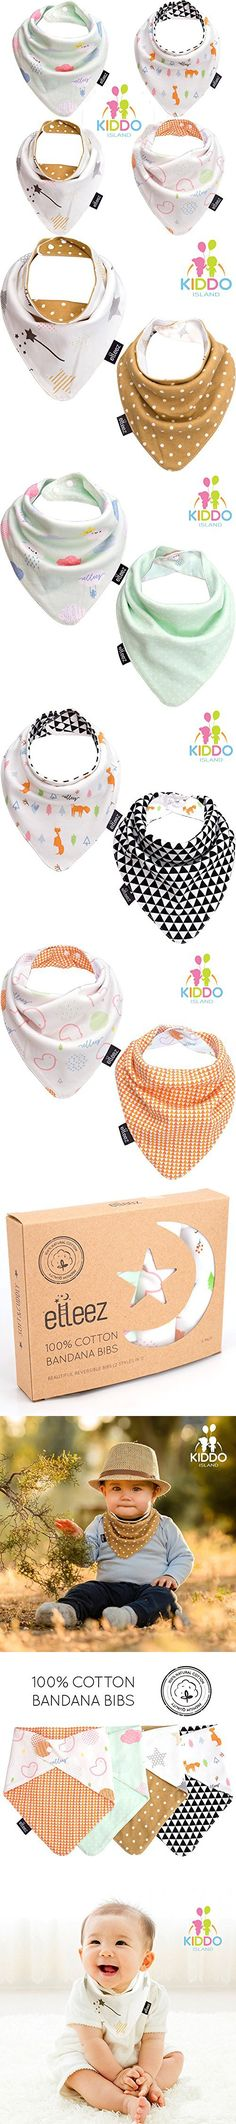 Baby Bandana Drool Bibs By Elleez - 4 Pack For Boys & Girls - Baby Gift Set - 100% Organic Cotton - Beautiful Reversible Bibs(2 Styles in 1) - Cool & Warm, Functional, Adorably Stylish (MULTI COLOR)